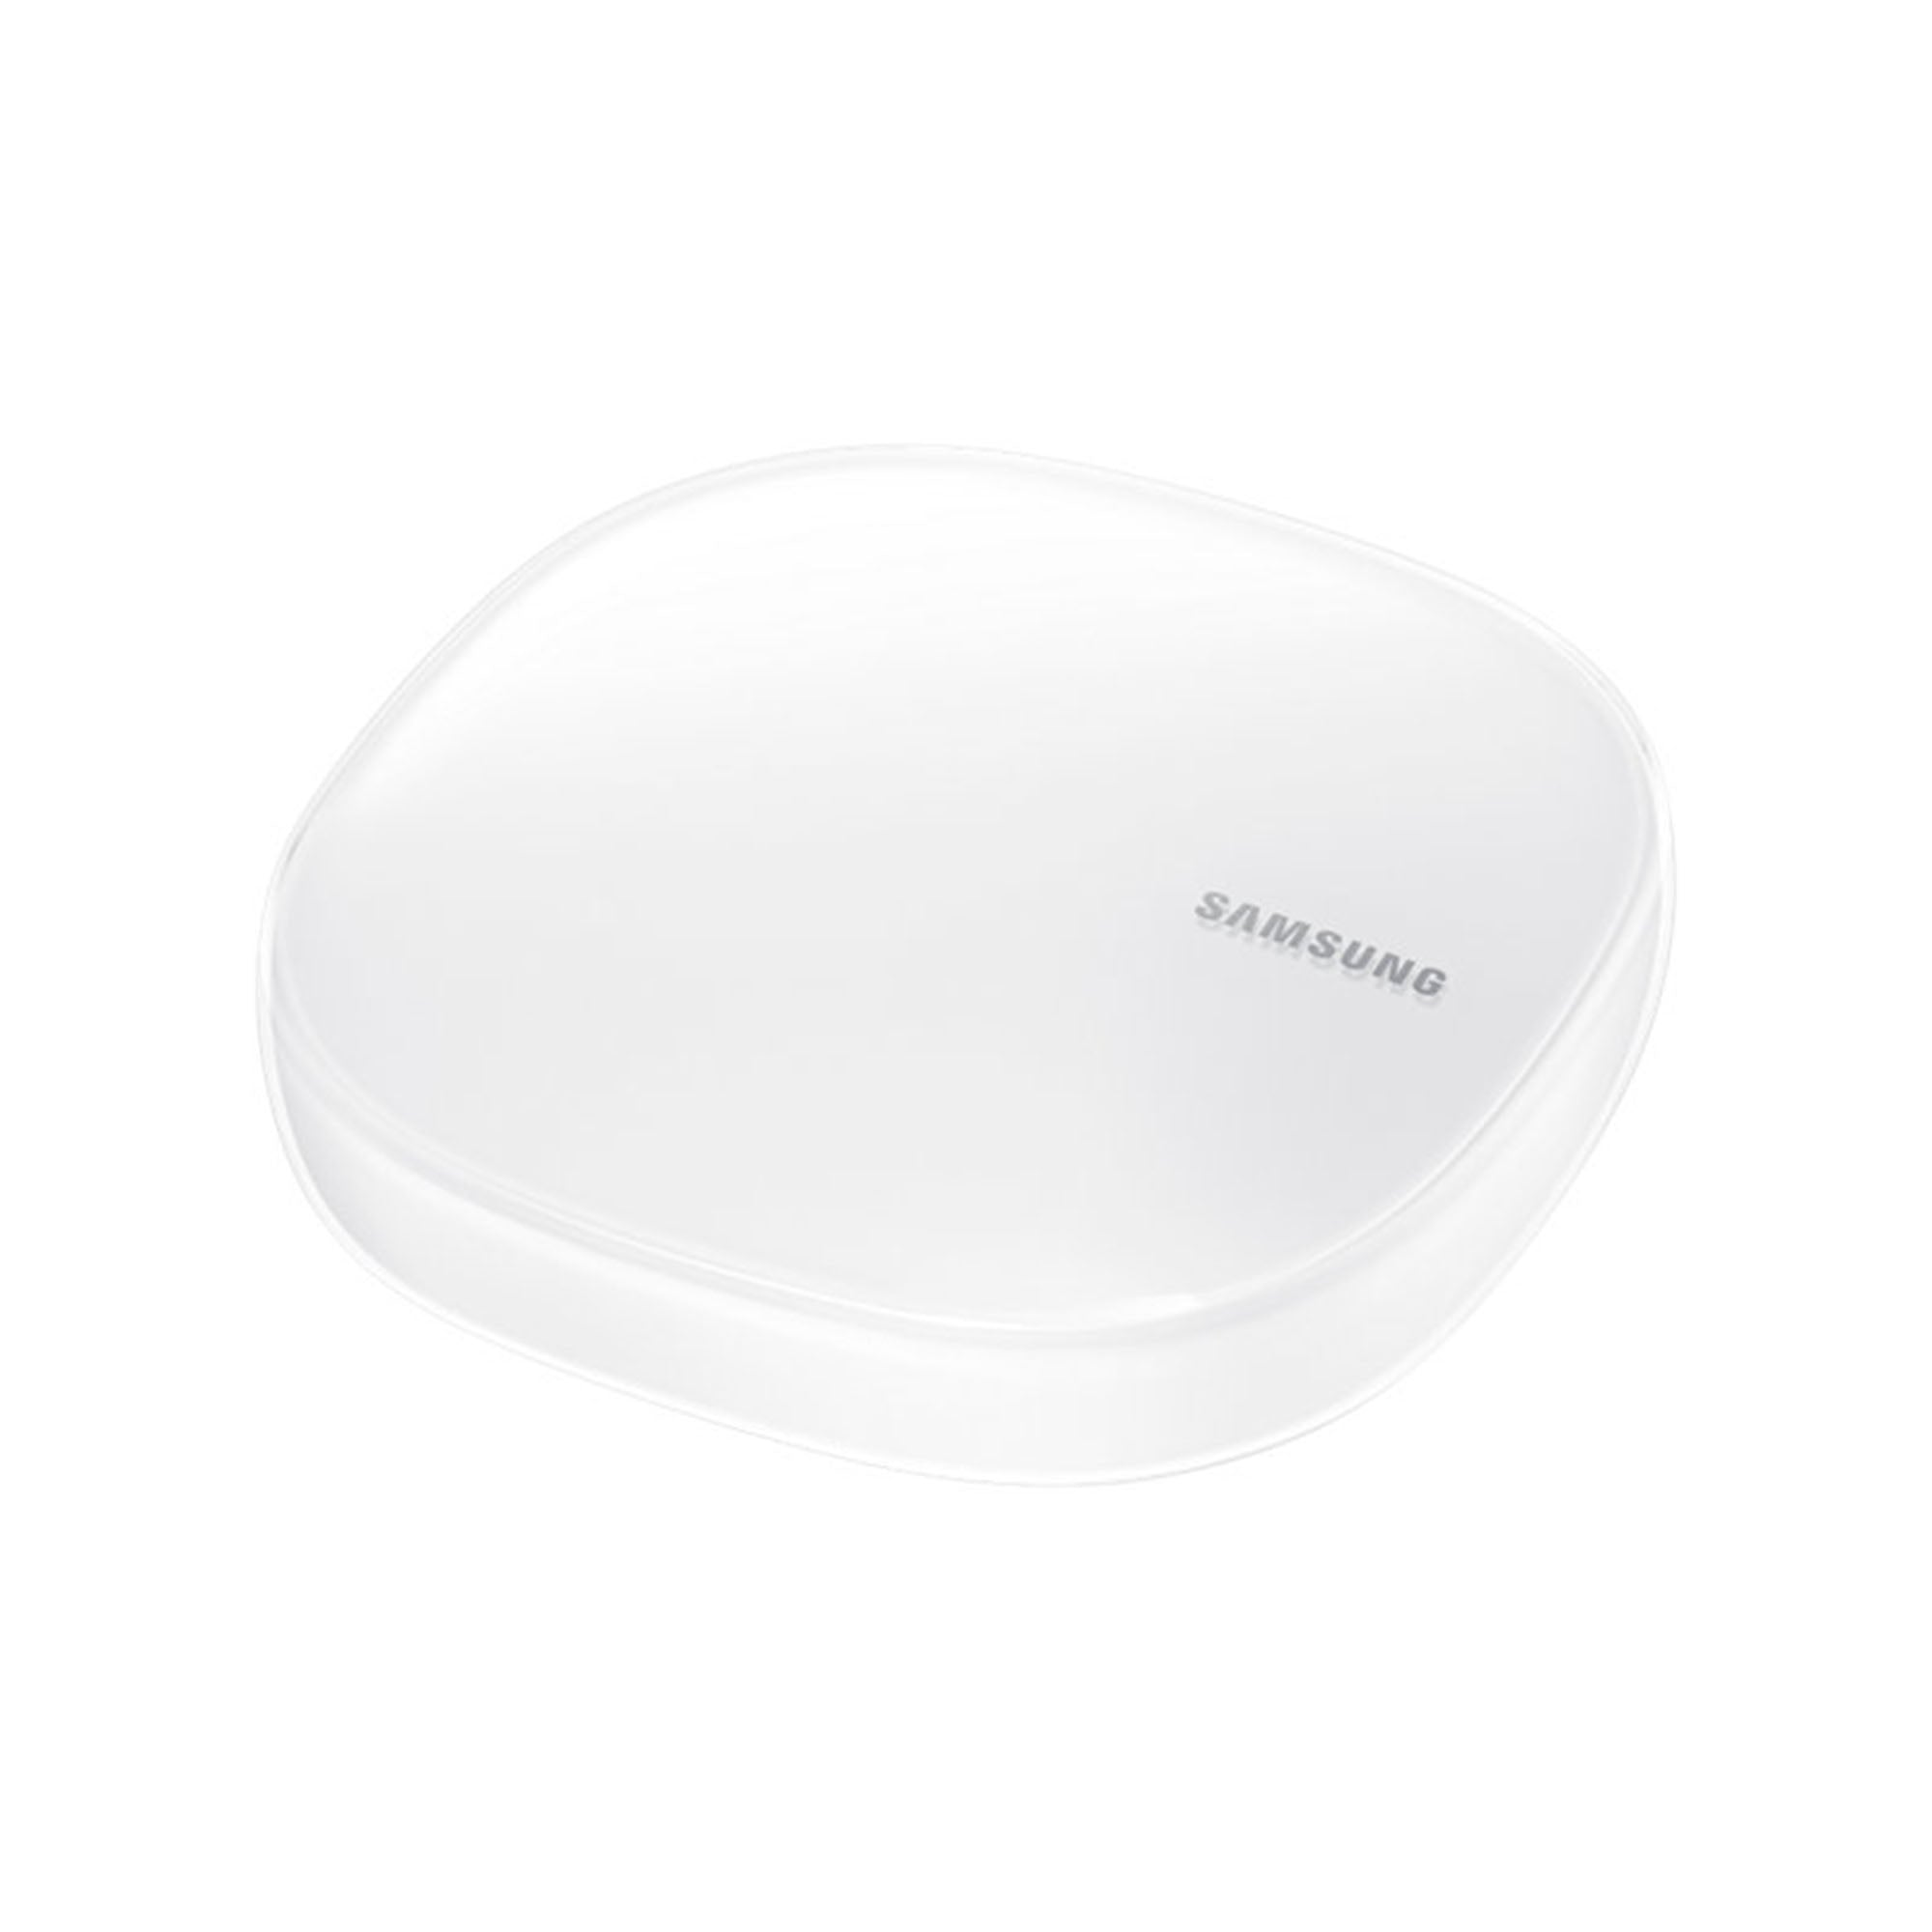 Samsung Connect Home Pro AC2600 Smart Wi-Fi System, 1-Pack - ET-WV530BWEGCA